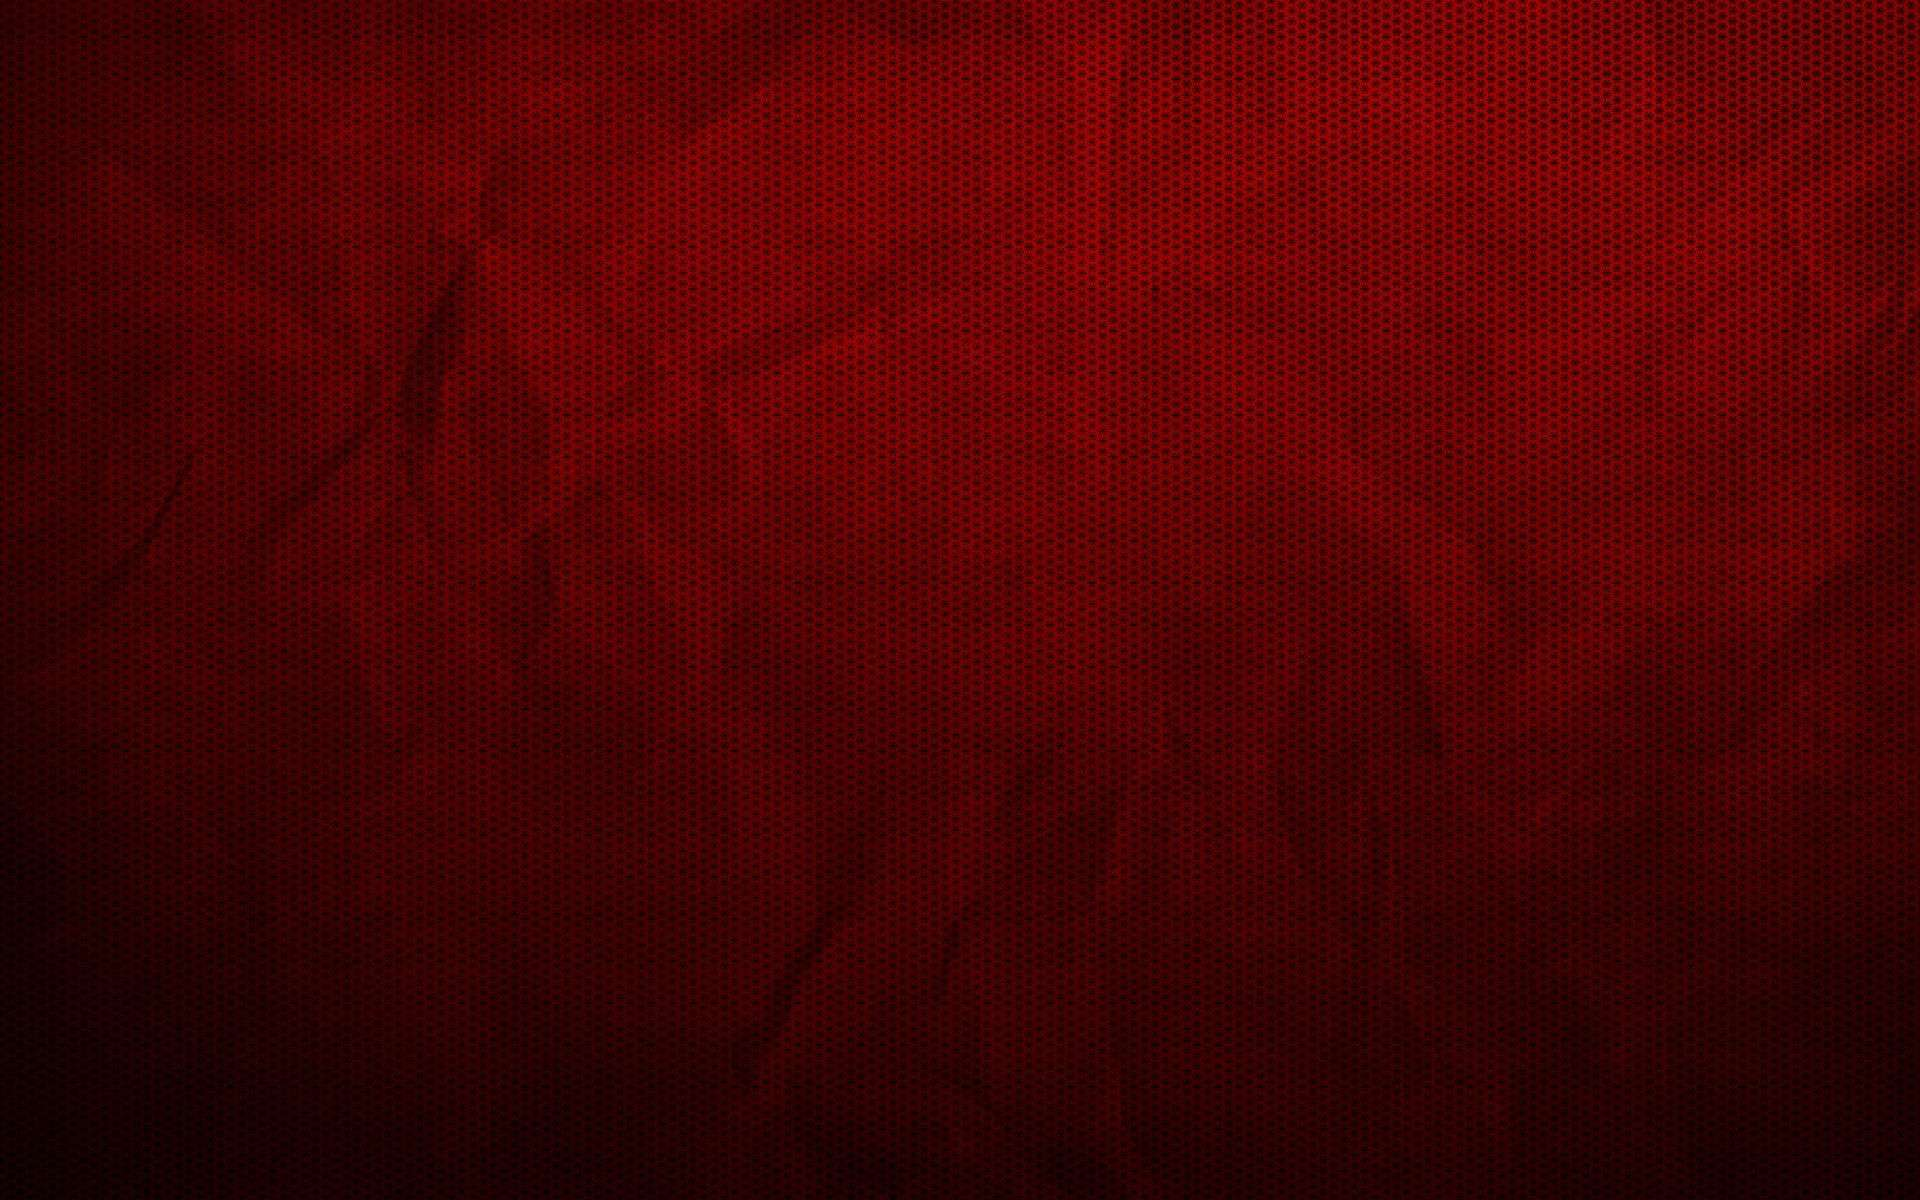 Red Wallpaper 055